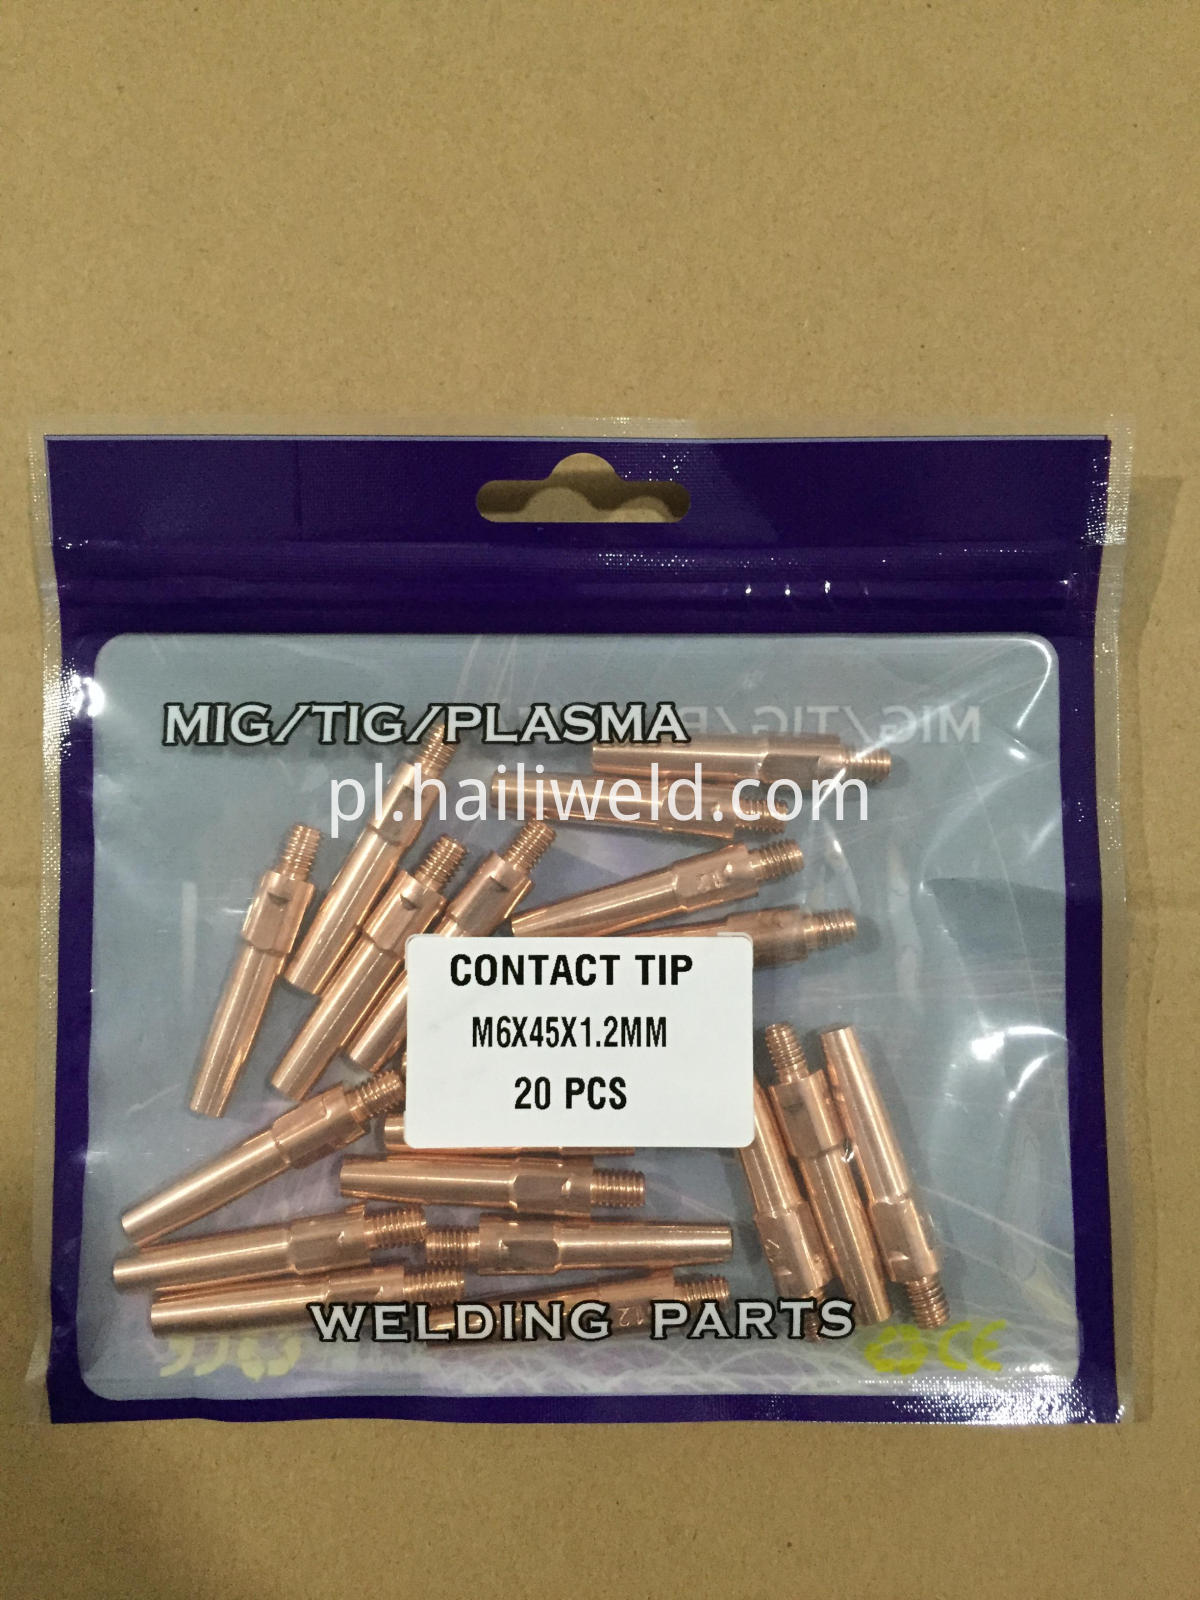 contact tip m6x45x1.2mm